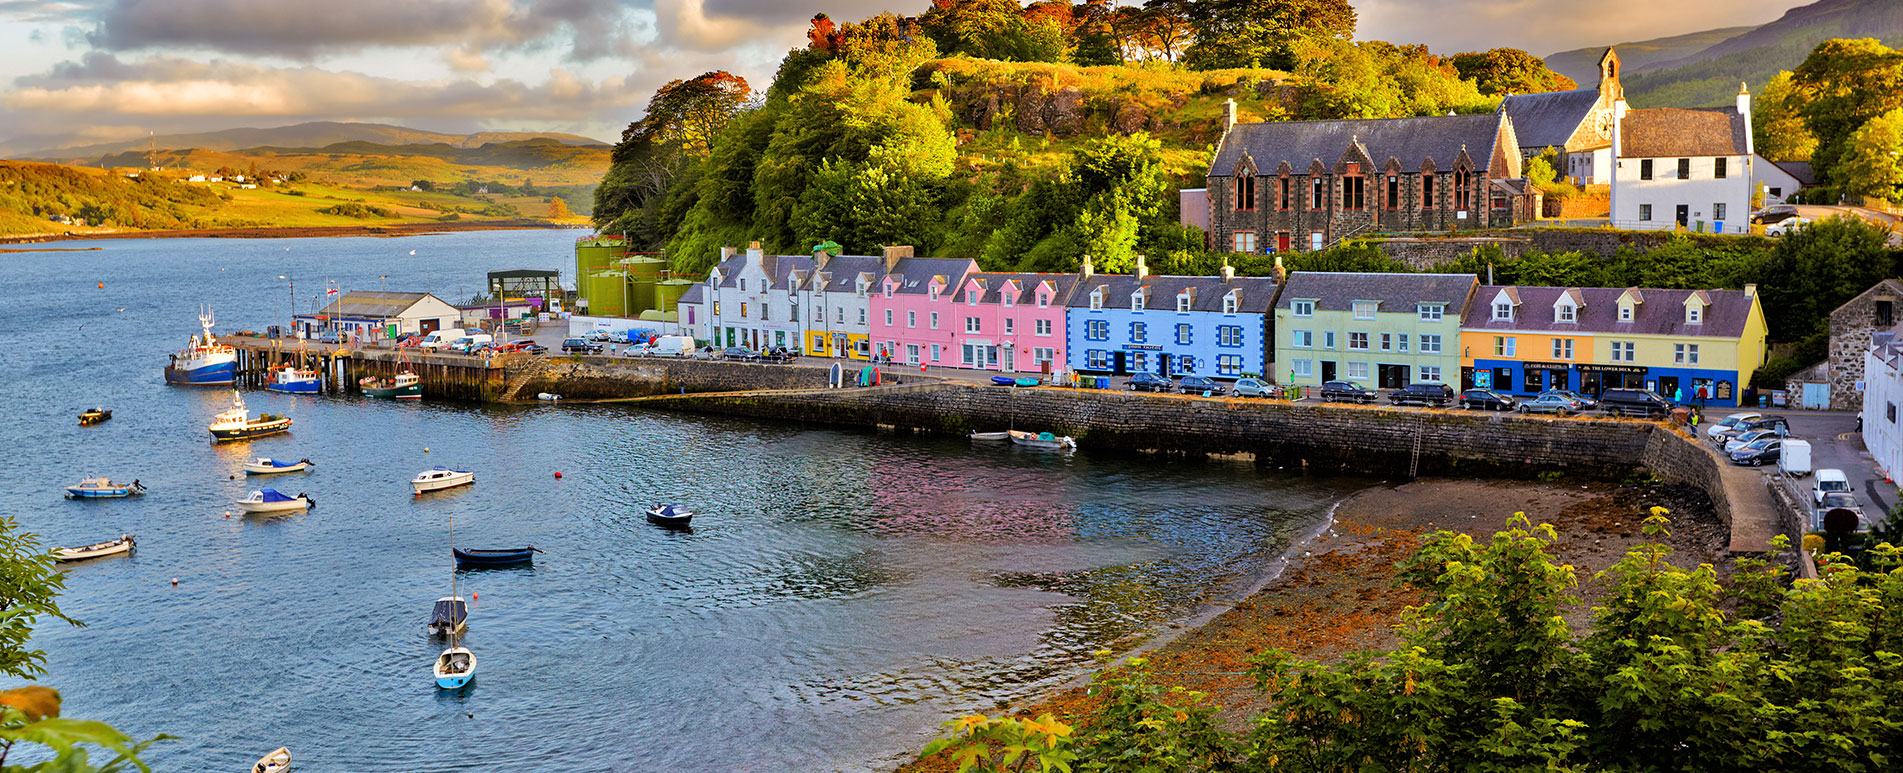 Discounted flight tickets to Scotland - IFlyFirstClass